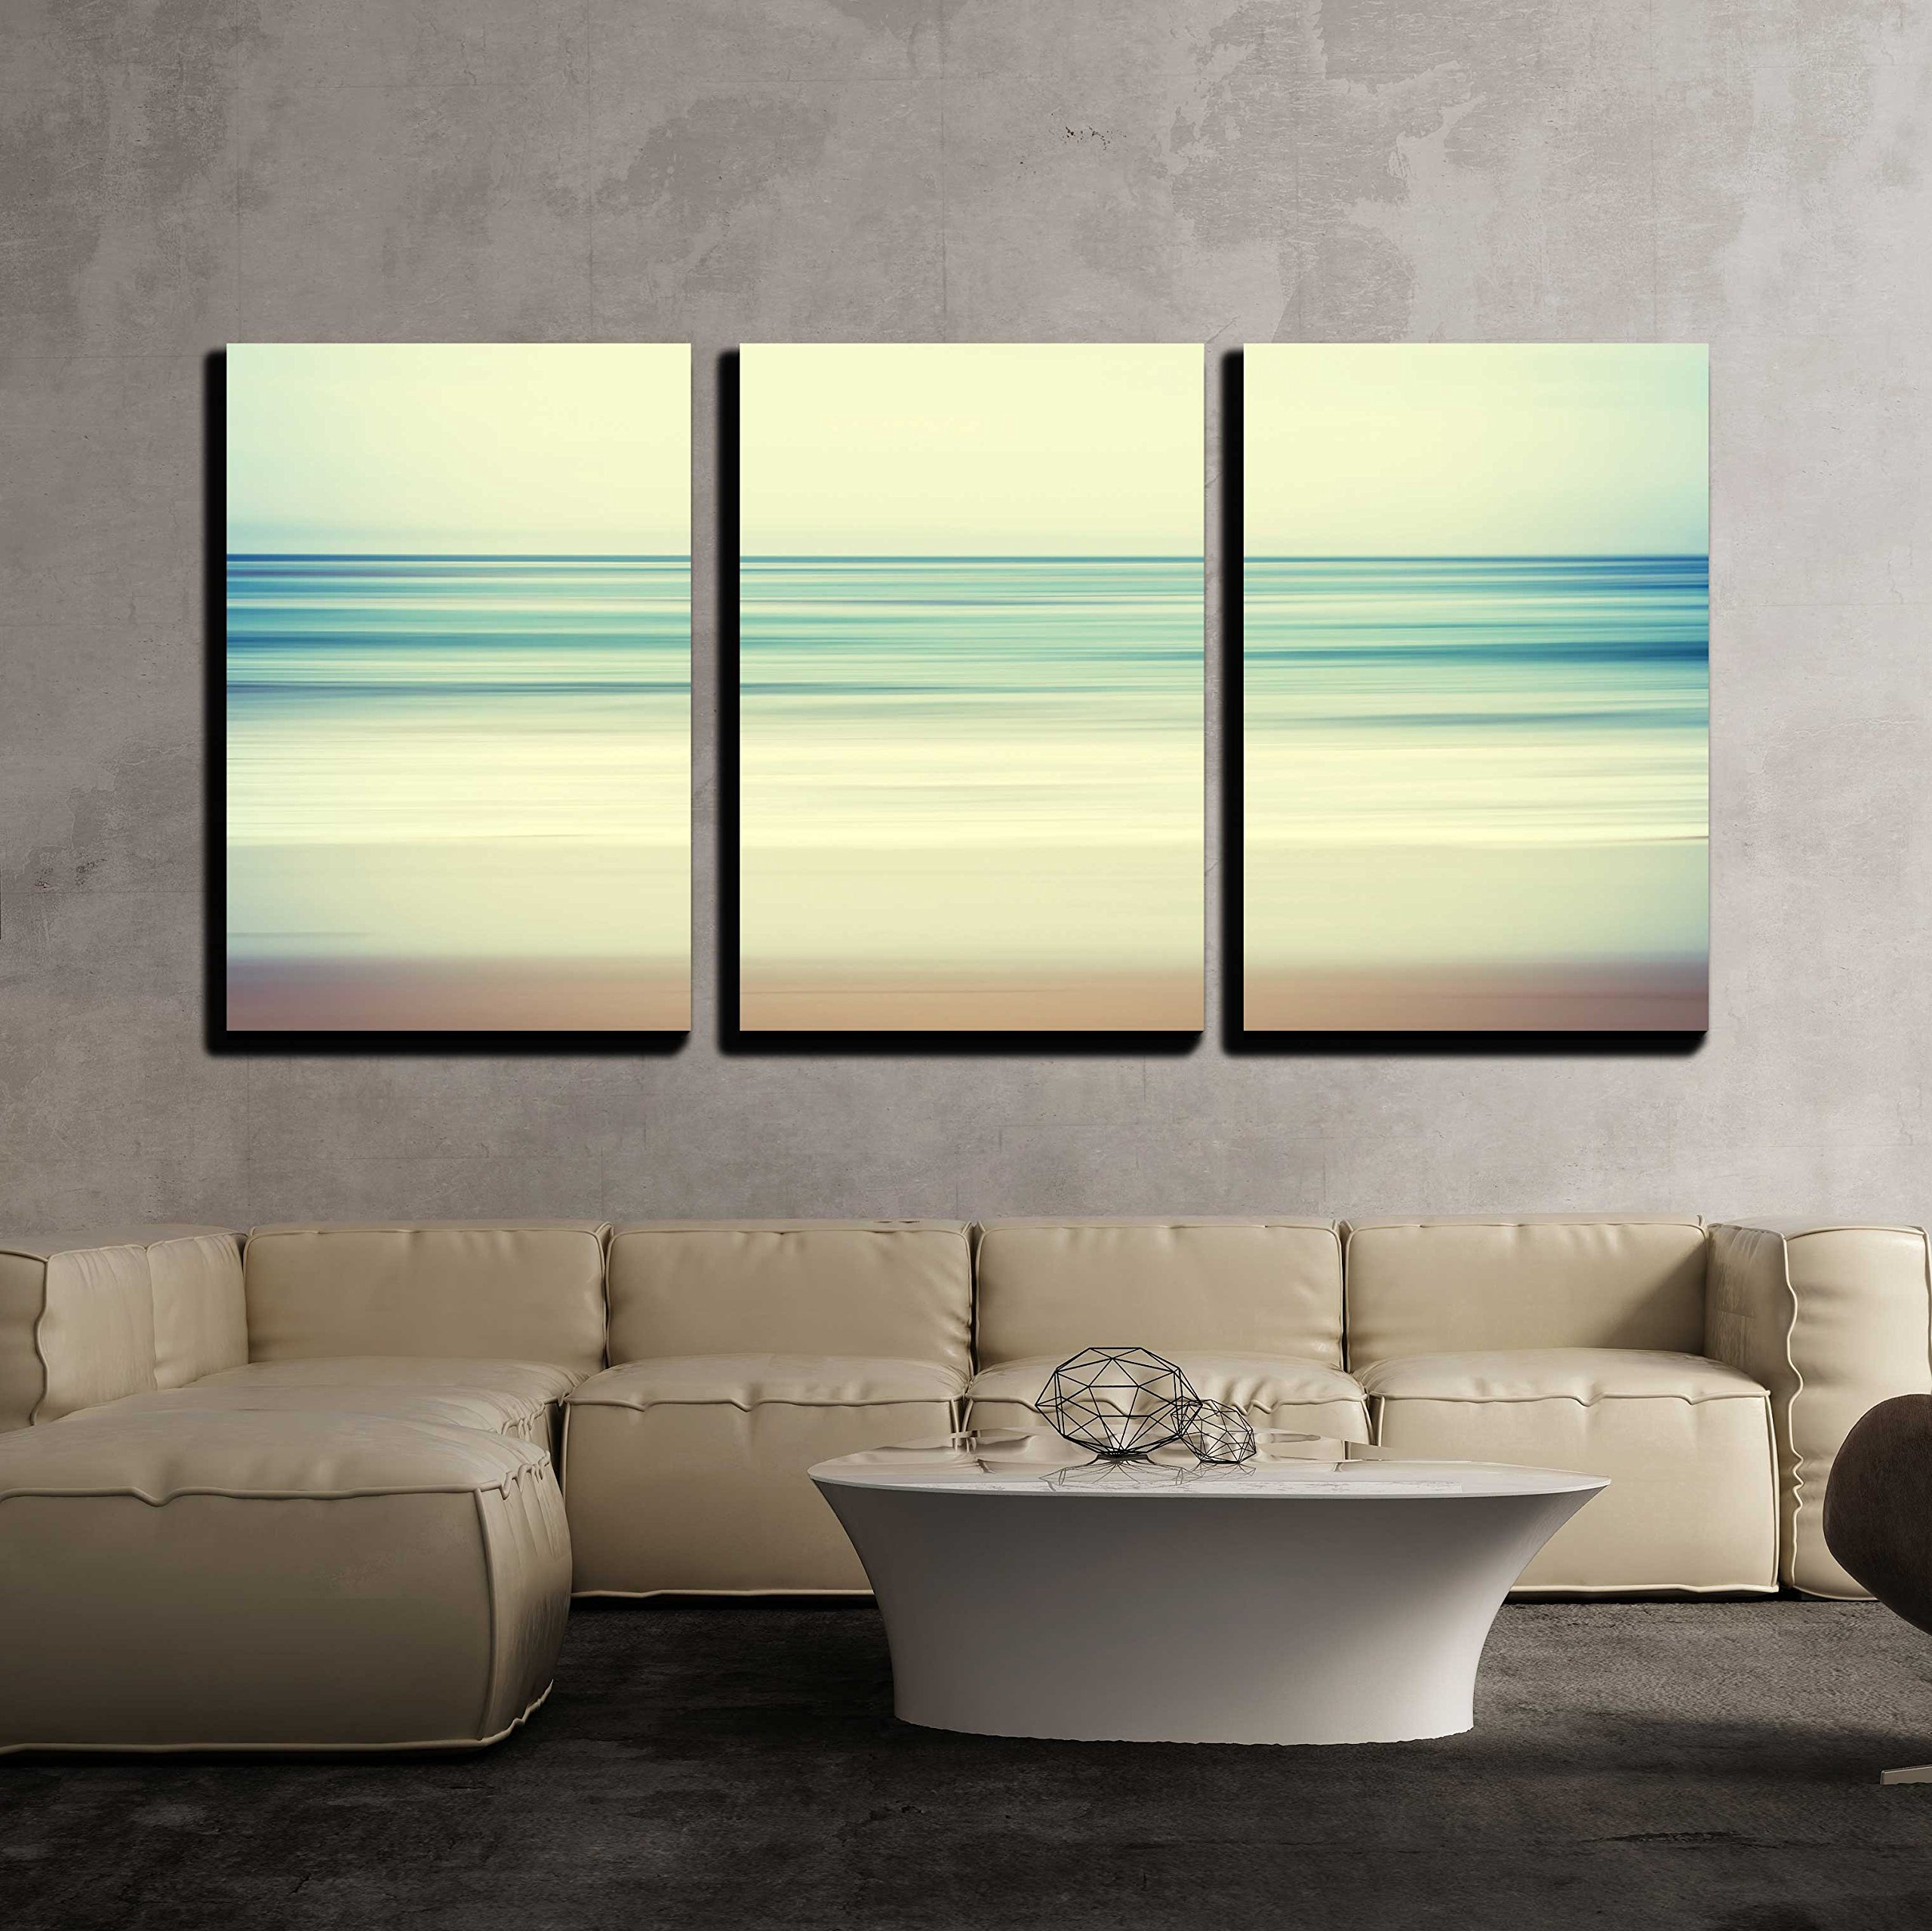 wall26 - 3 Piece Canvas Wall Art - an Abstract Ocean Seascape with Blurred Panning Motion - Modern Home Decor Stretched and Framed Ready to Hang - 16''x24''x3 Panels